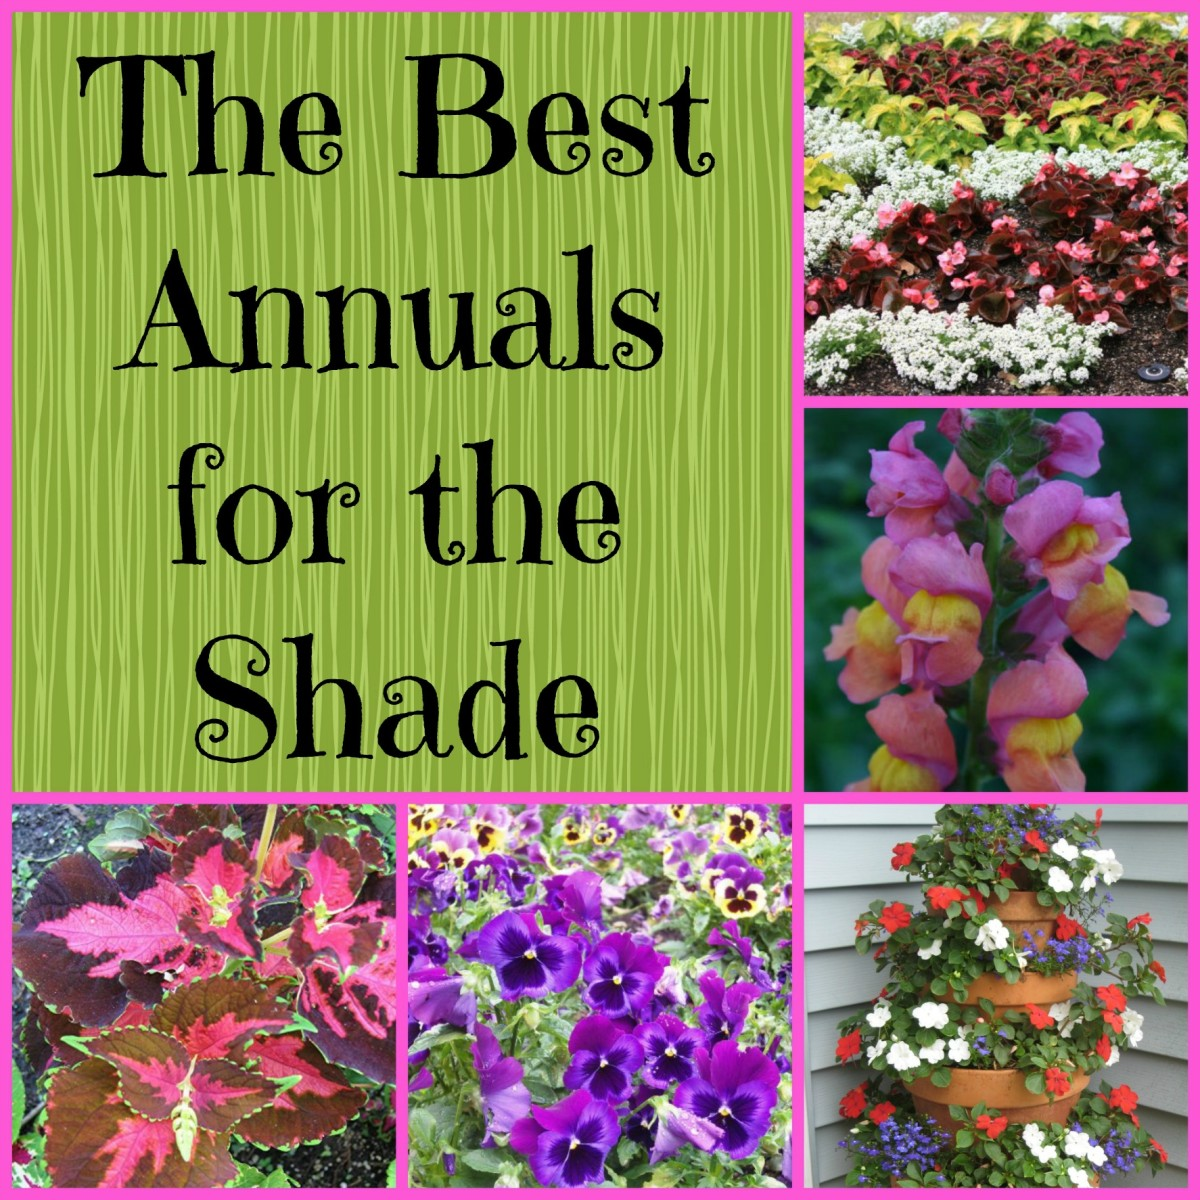 Gardening in the shade annual plants for shady areas